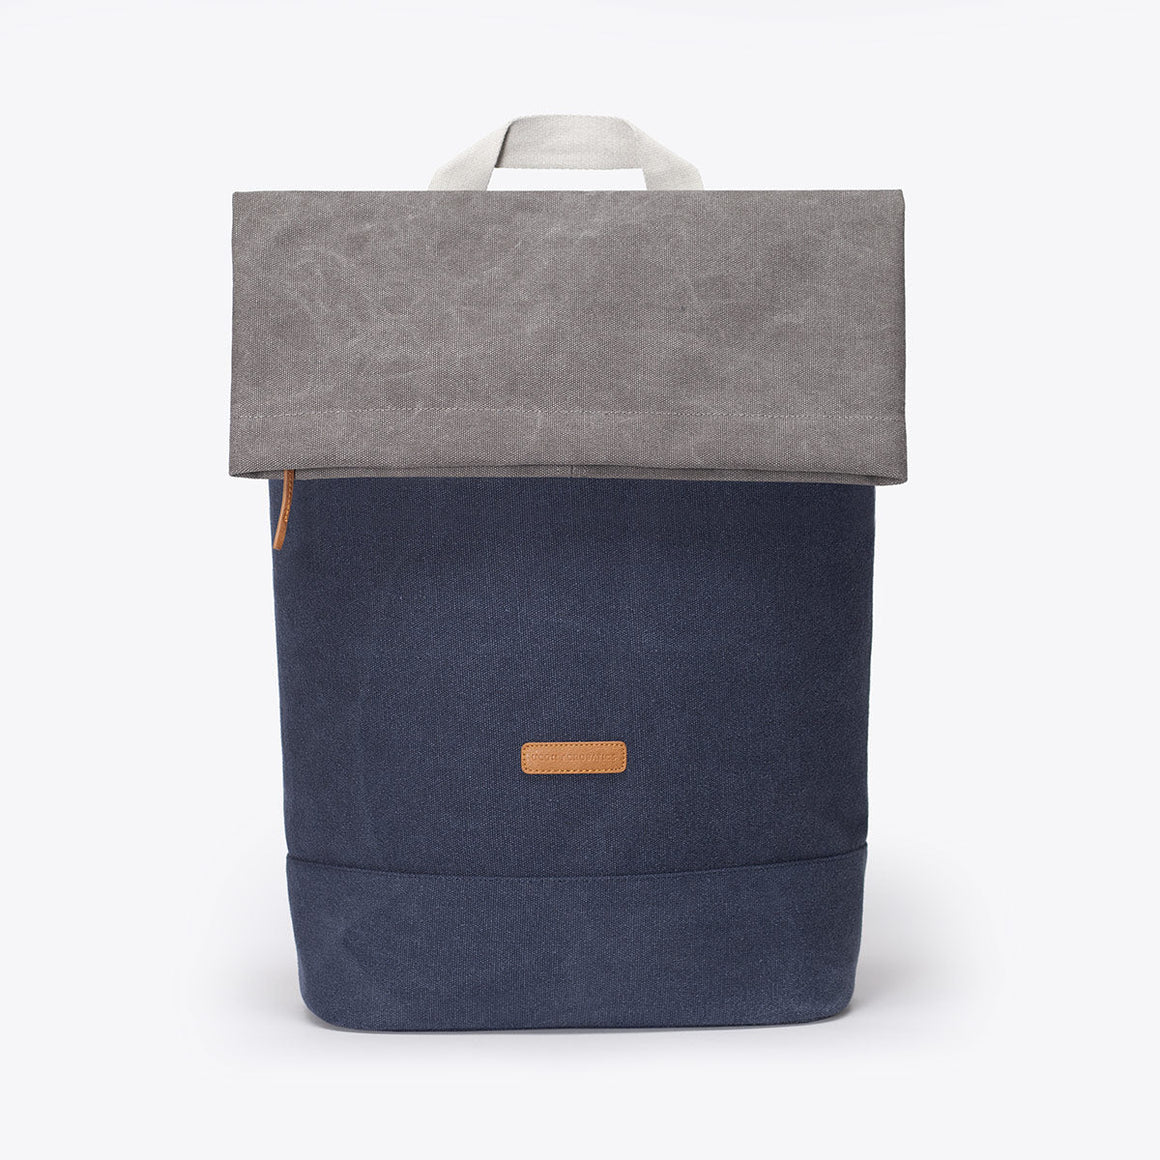 Ucon Acrobatics • Karlo Backpack • Original Series (Dark Navy)